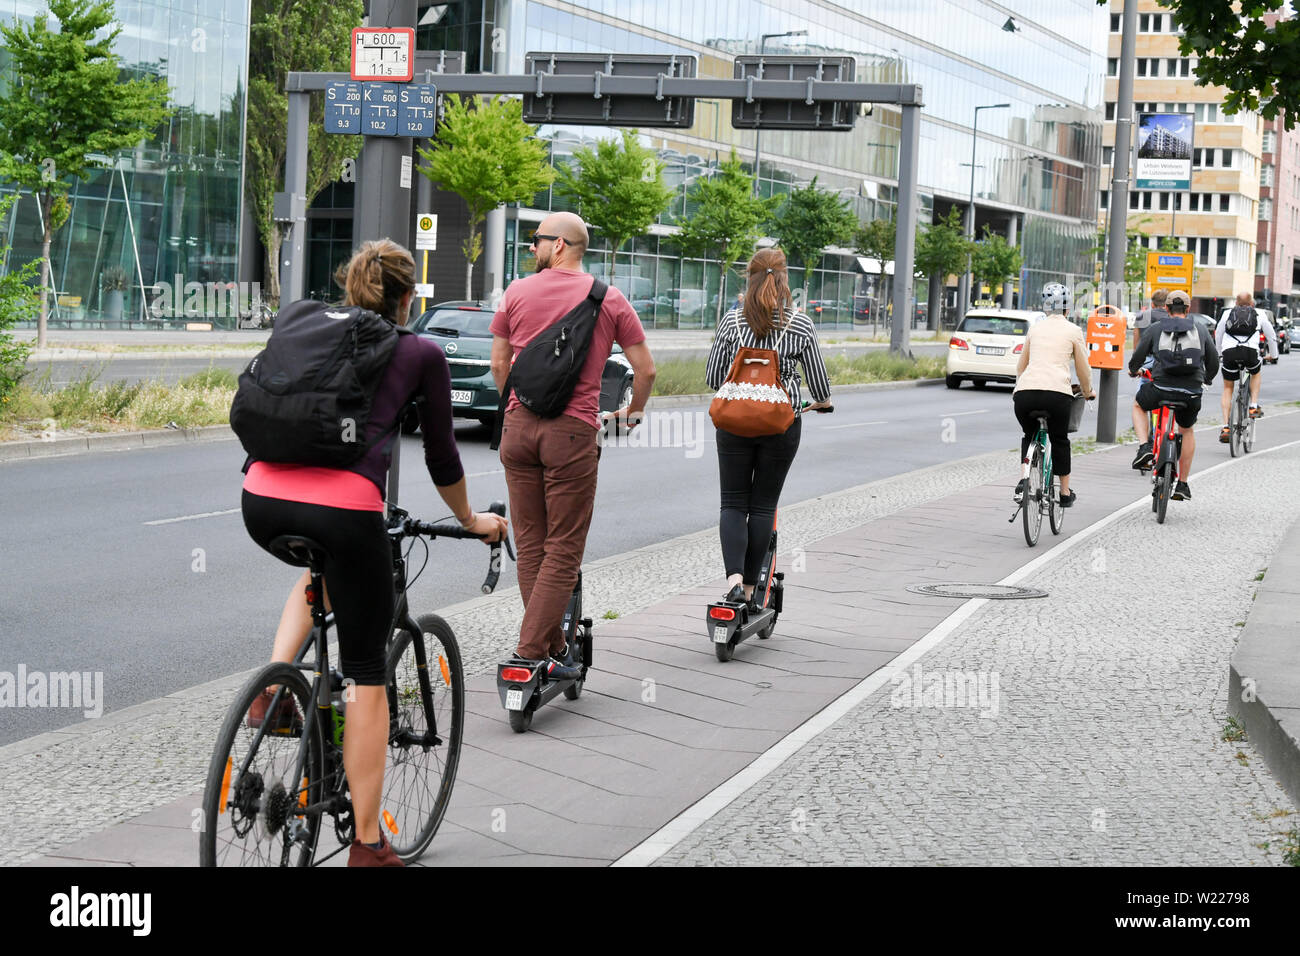 Berlin, Germany. 05th July, 2019. E-Tretroller between bicycles in road traffic. E-scooters may be used in Germany since mid-June. Credit: Jens Kalaene/dpa-Zentralbild/ZB/dpa/Alamy Live News Stock Photo